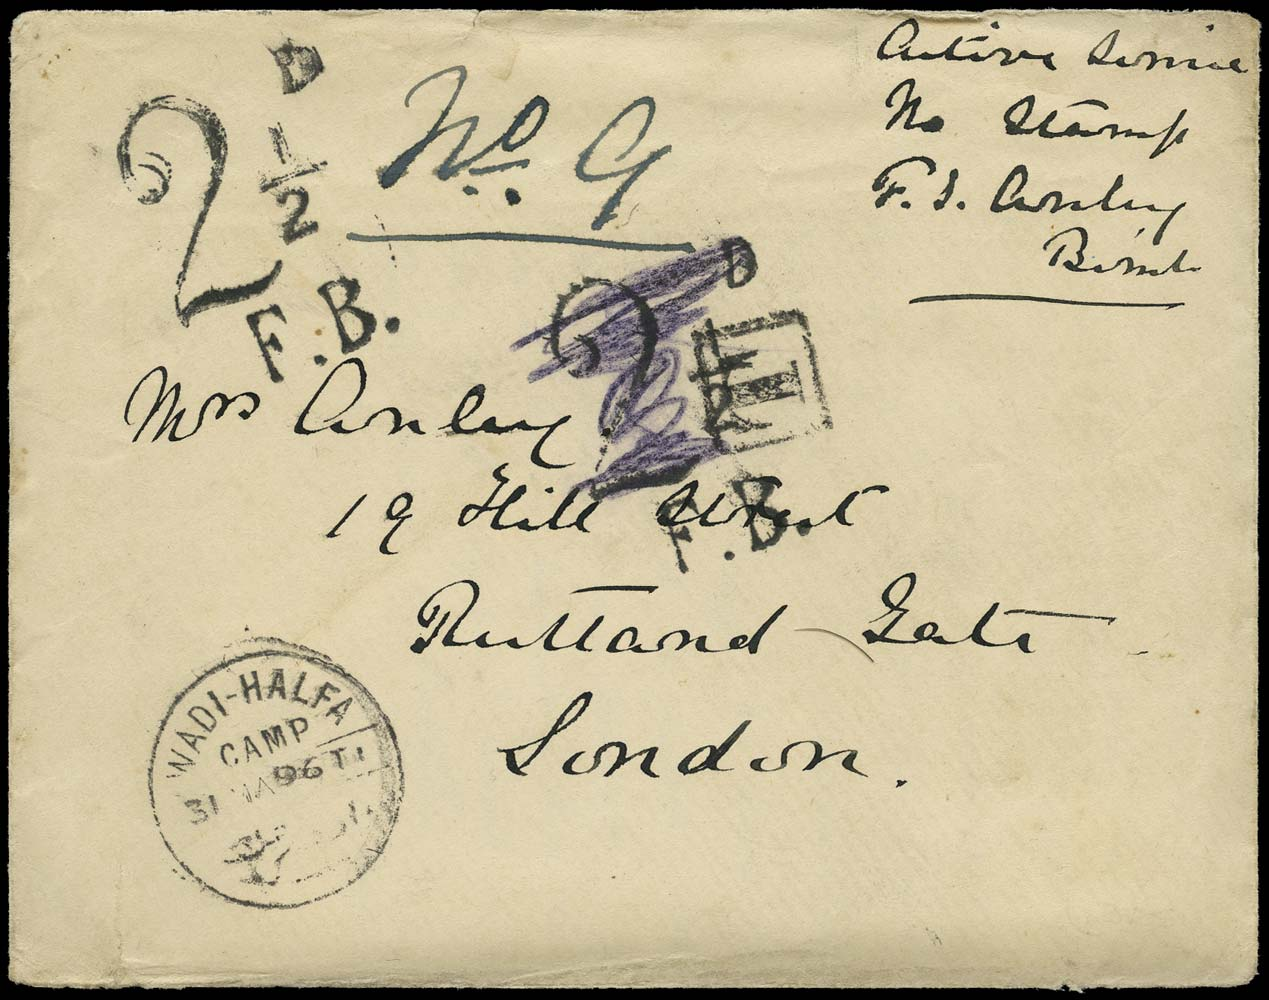 SUDAN 1896 Cover on active service Dongola Campaign